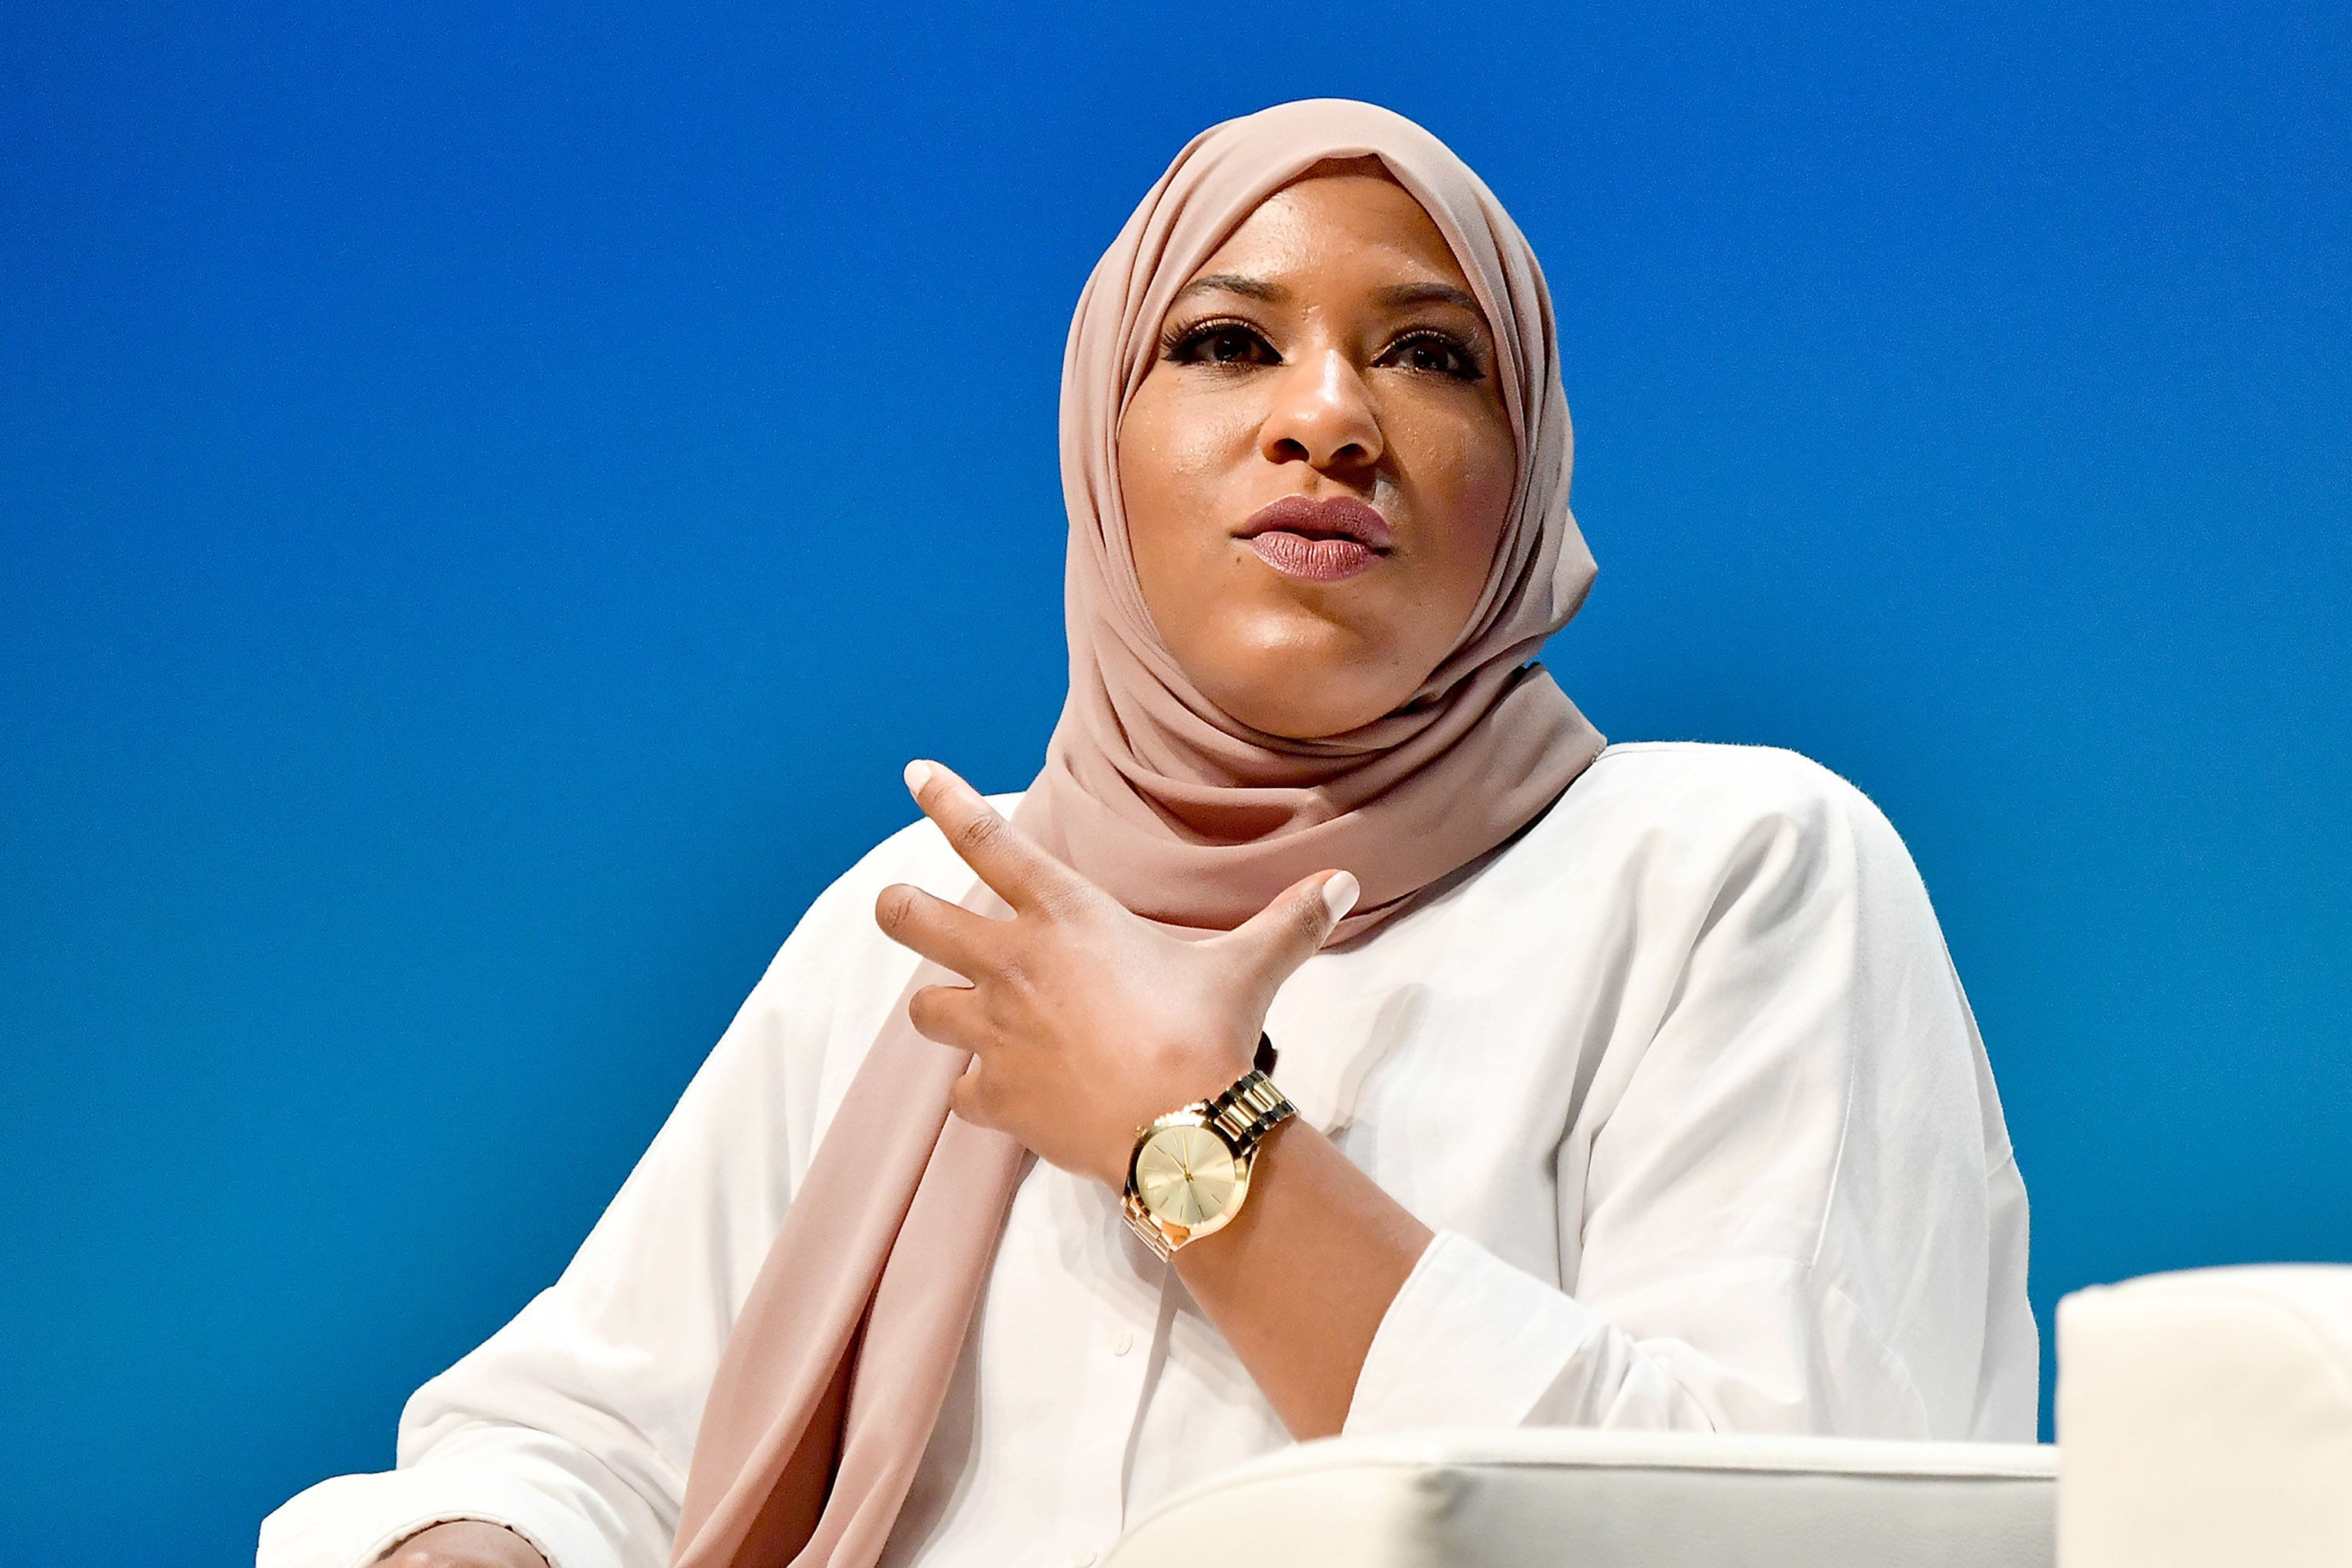 CANNES, FRANCE - JUNE 20: Olympic Medalist Ibtihaj Muhammad speaks onstage during the Wasserman session at the Cannes Lions Festival 2018 on June 20, 2018 in Cannes, France.  (Photo by Dominique Charriau/Getty Images for Cannes Lions)